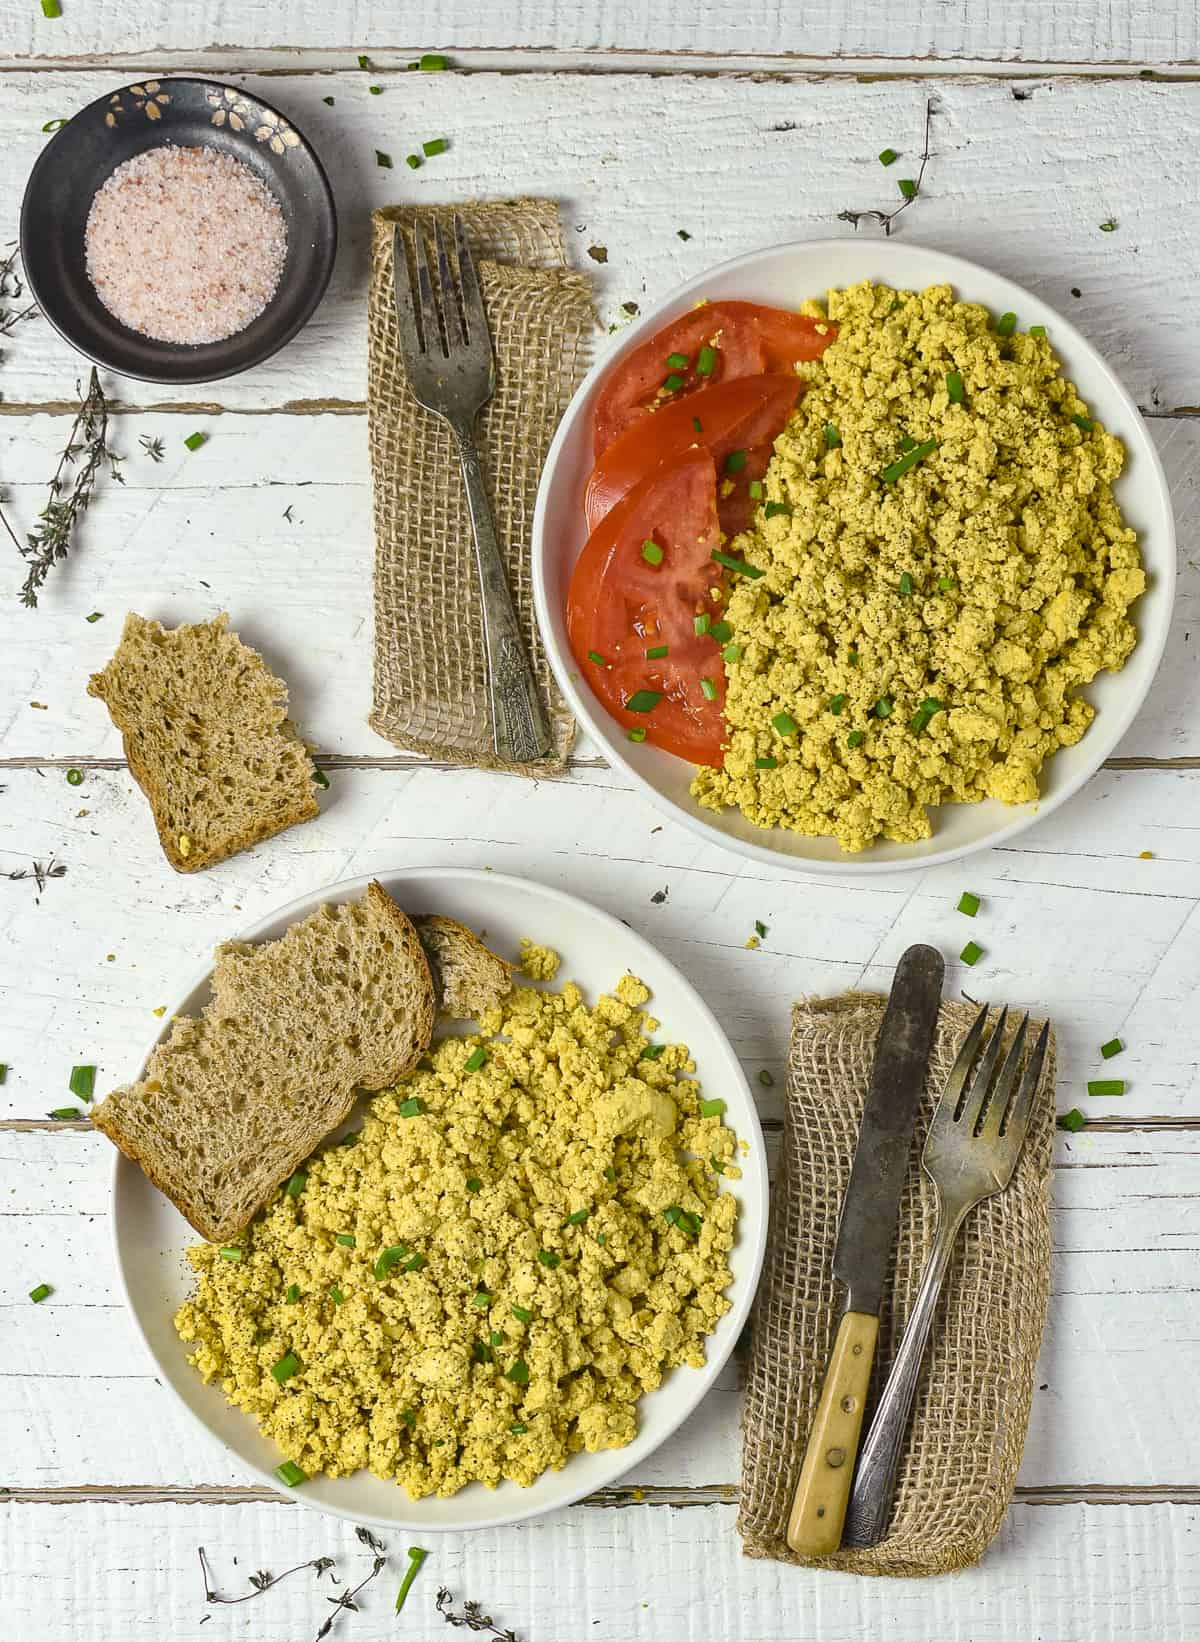 Two plates of tofu scramble.